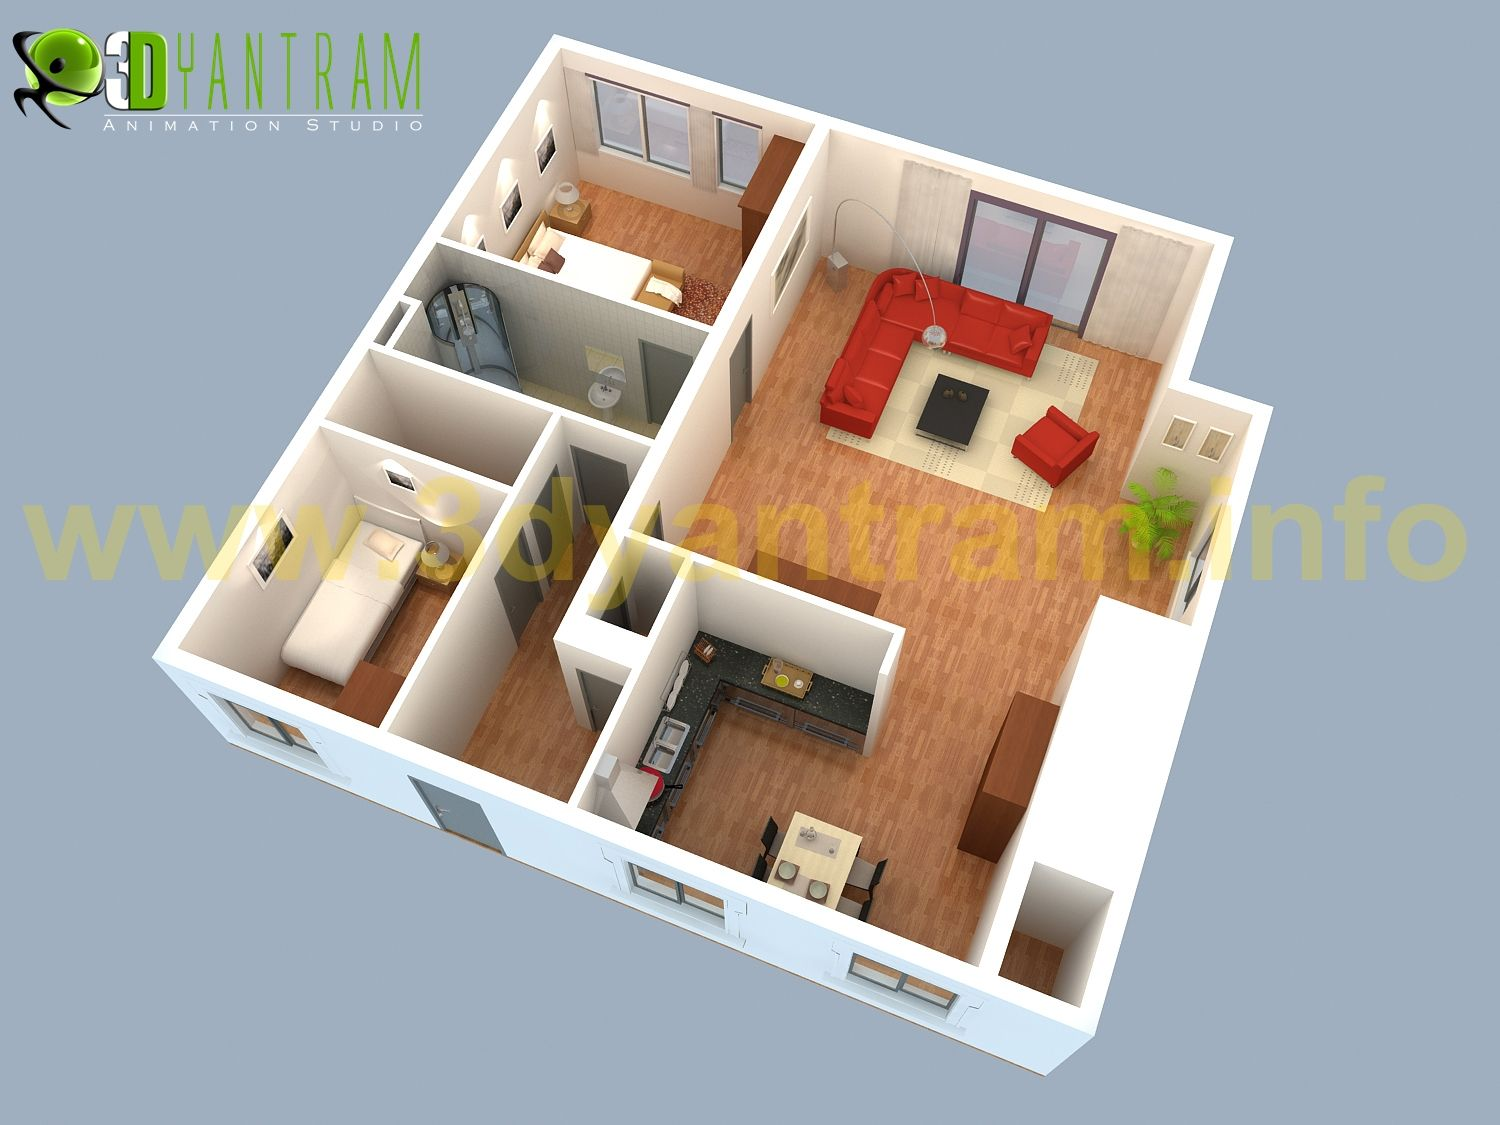 Small House 3d Floor Plan Cgi Turkey Small House Design Floor Plan Small House Design Small House Design Plans